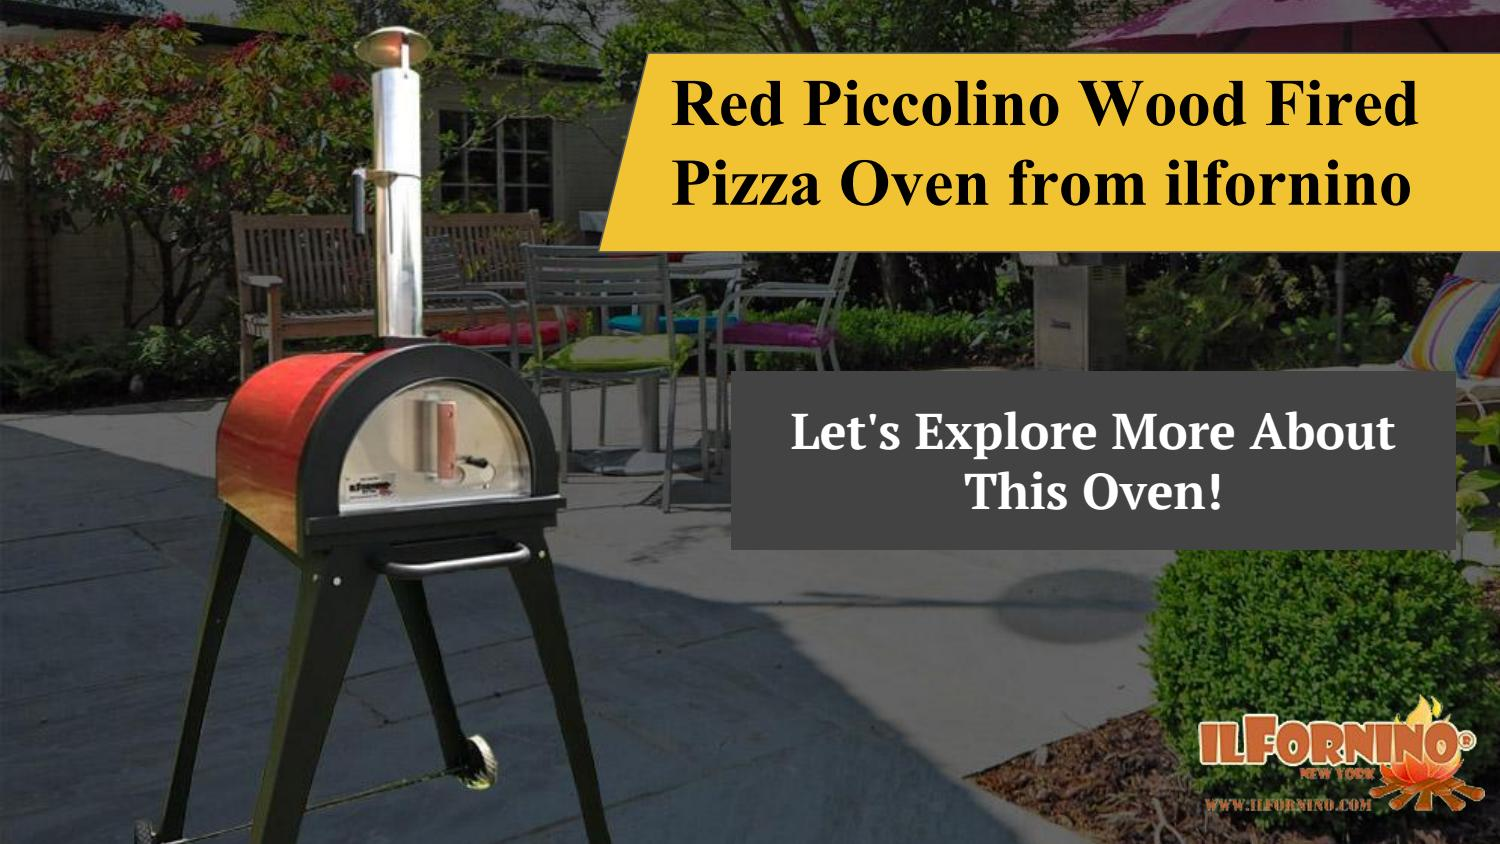 Red Piccolino Wood Fired Pizza Oven From Ilfornino By Carrie Hester Issuu